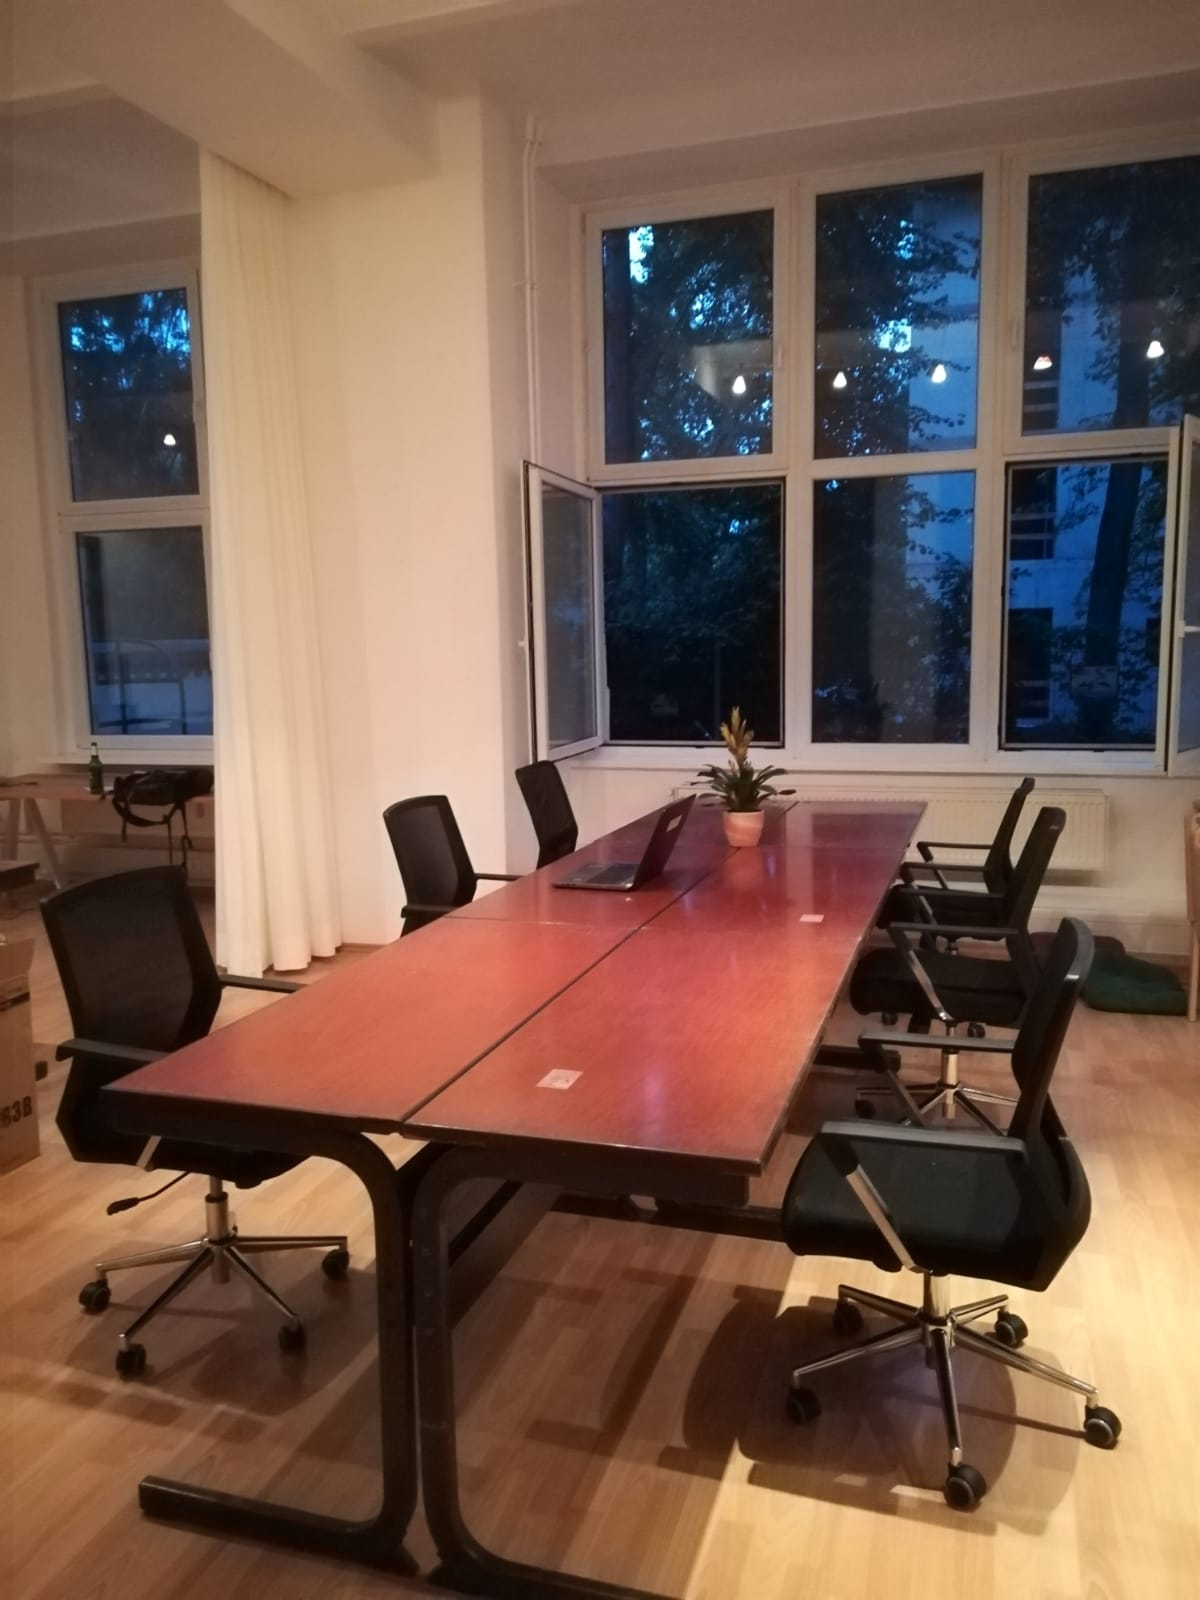 tuesday coworking is opening a second space - special offer for new members! 2